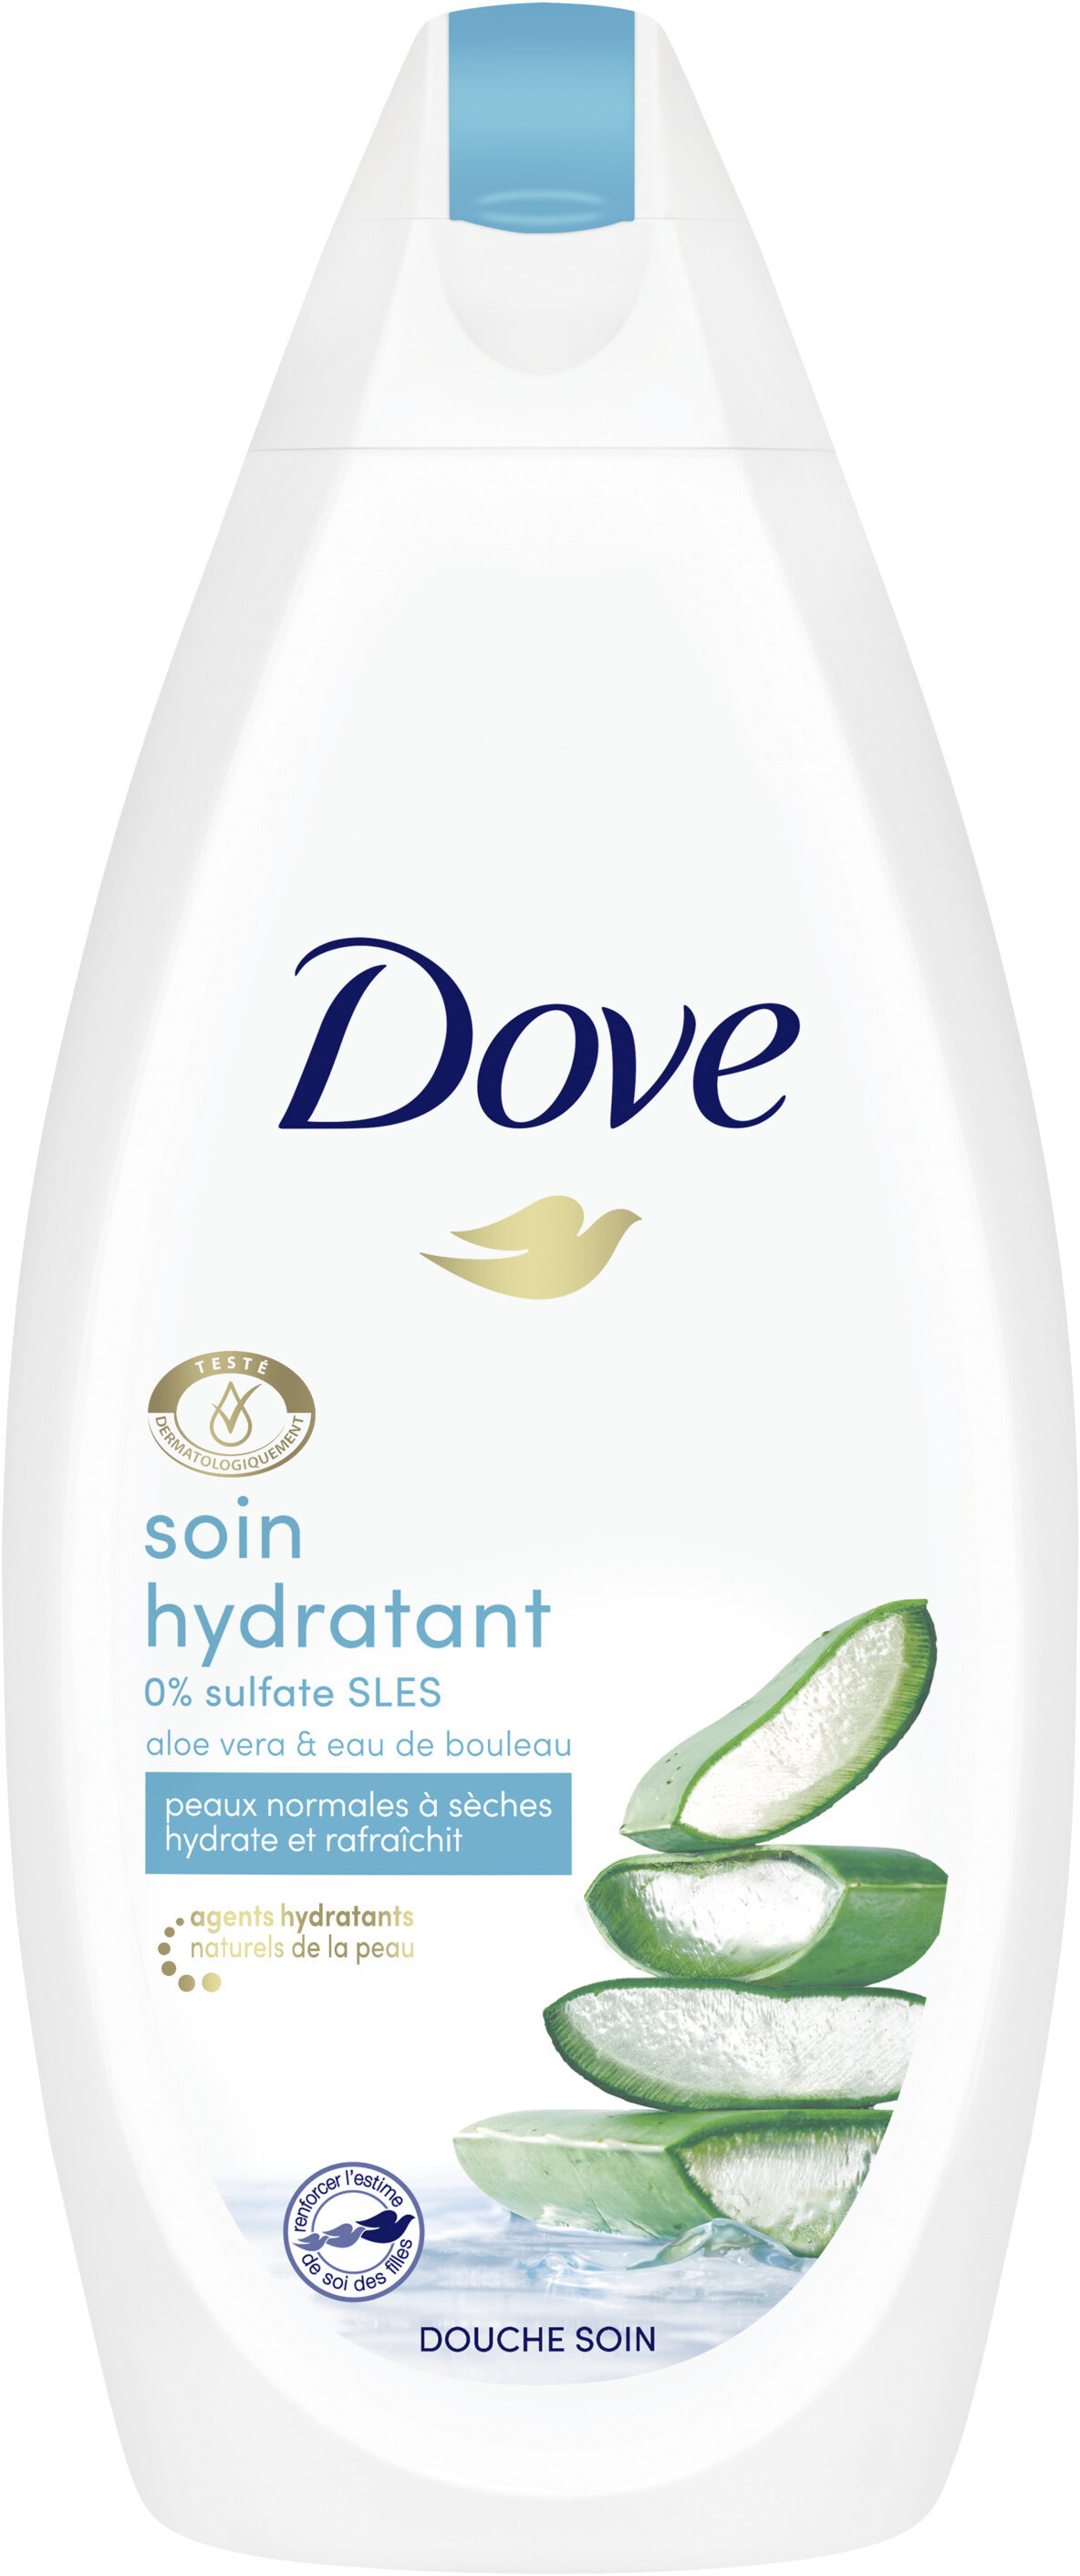 Dove Gel Douche Soin Hydratant - Product - fr